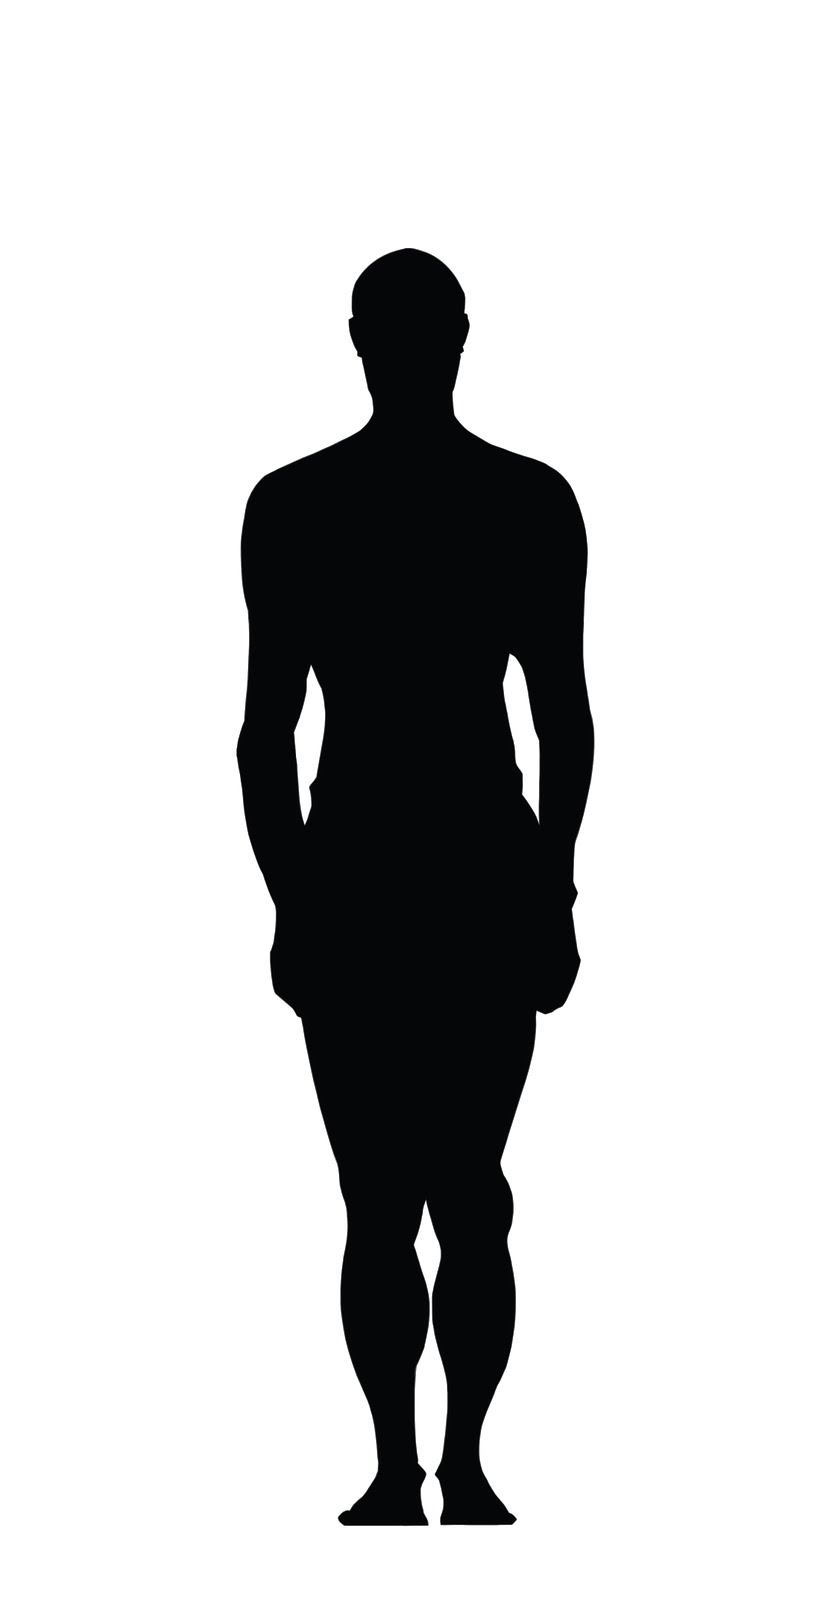 Human Body Silhouette   Clipart Best